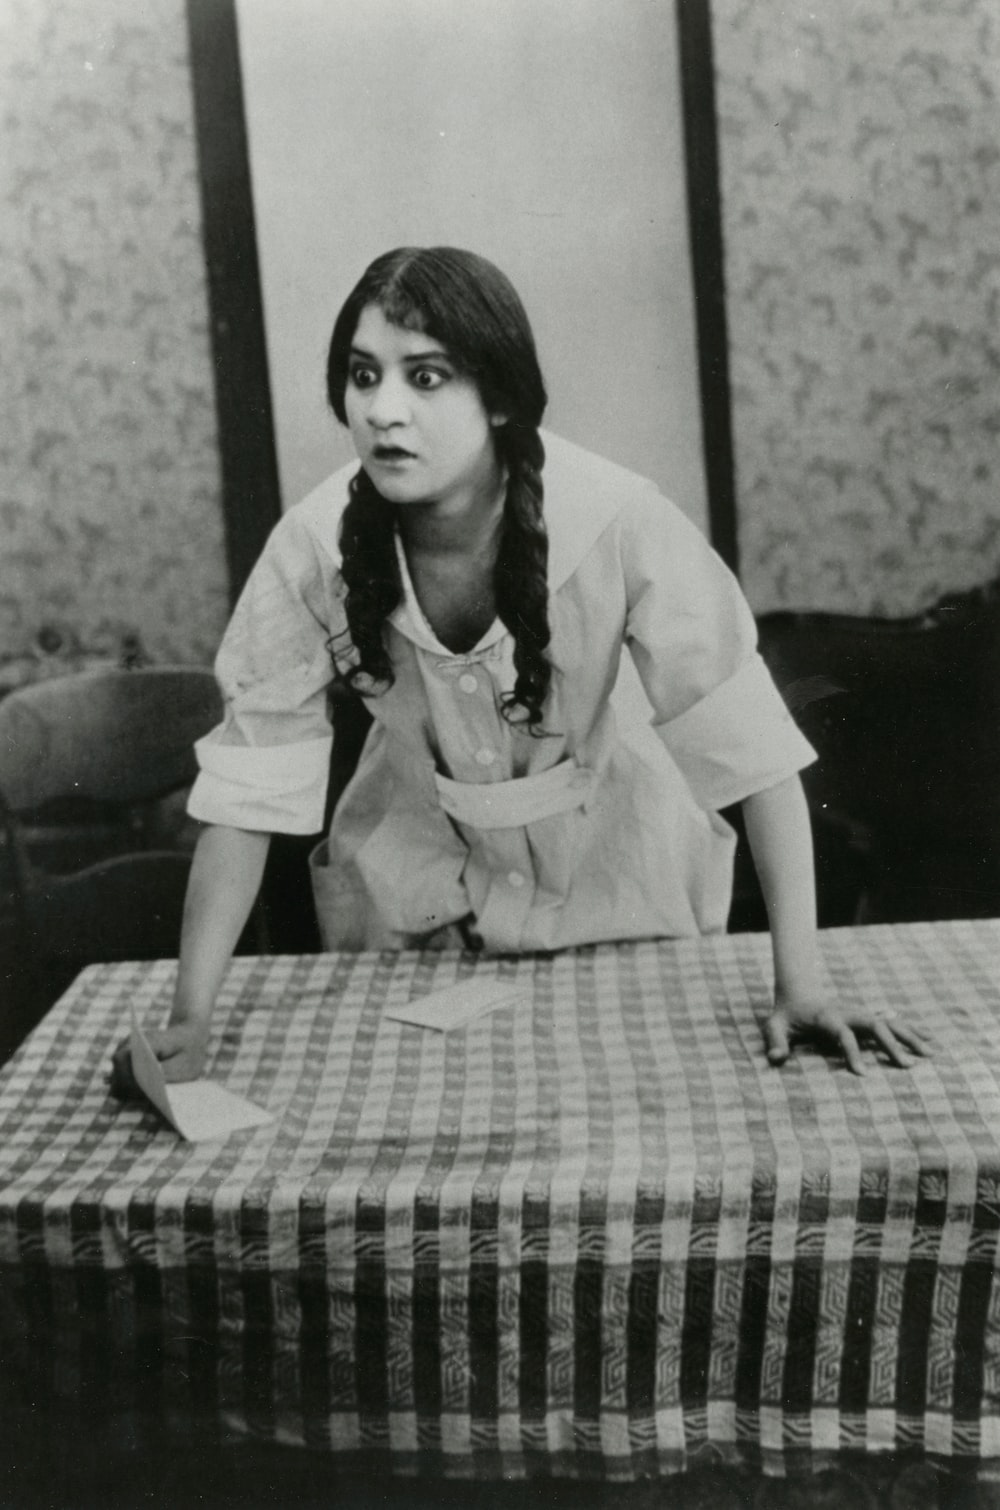 woman leaning forward on table